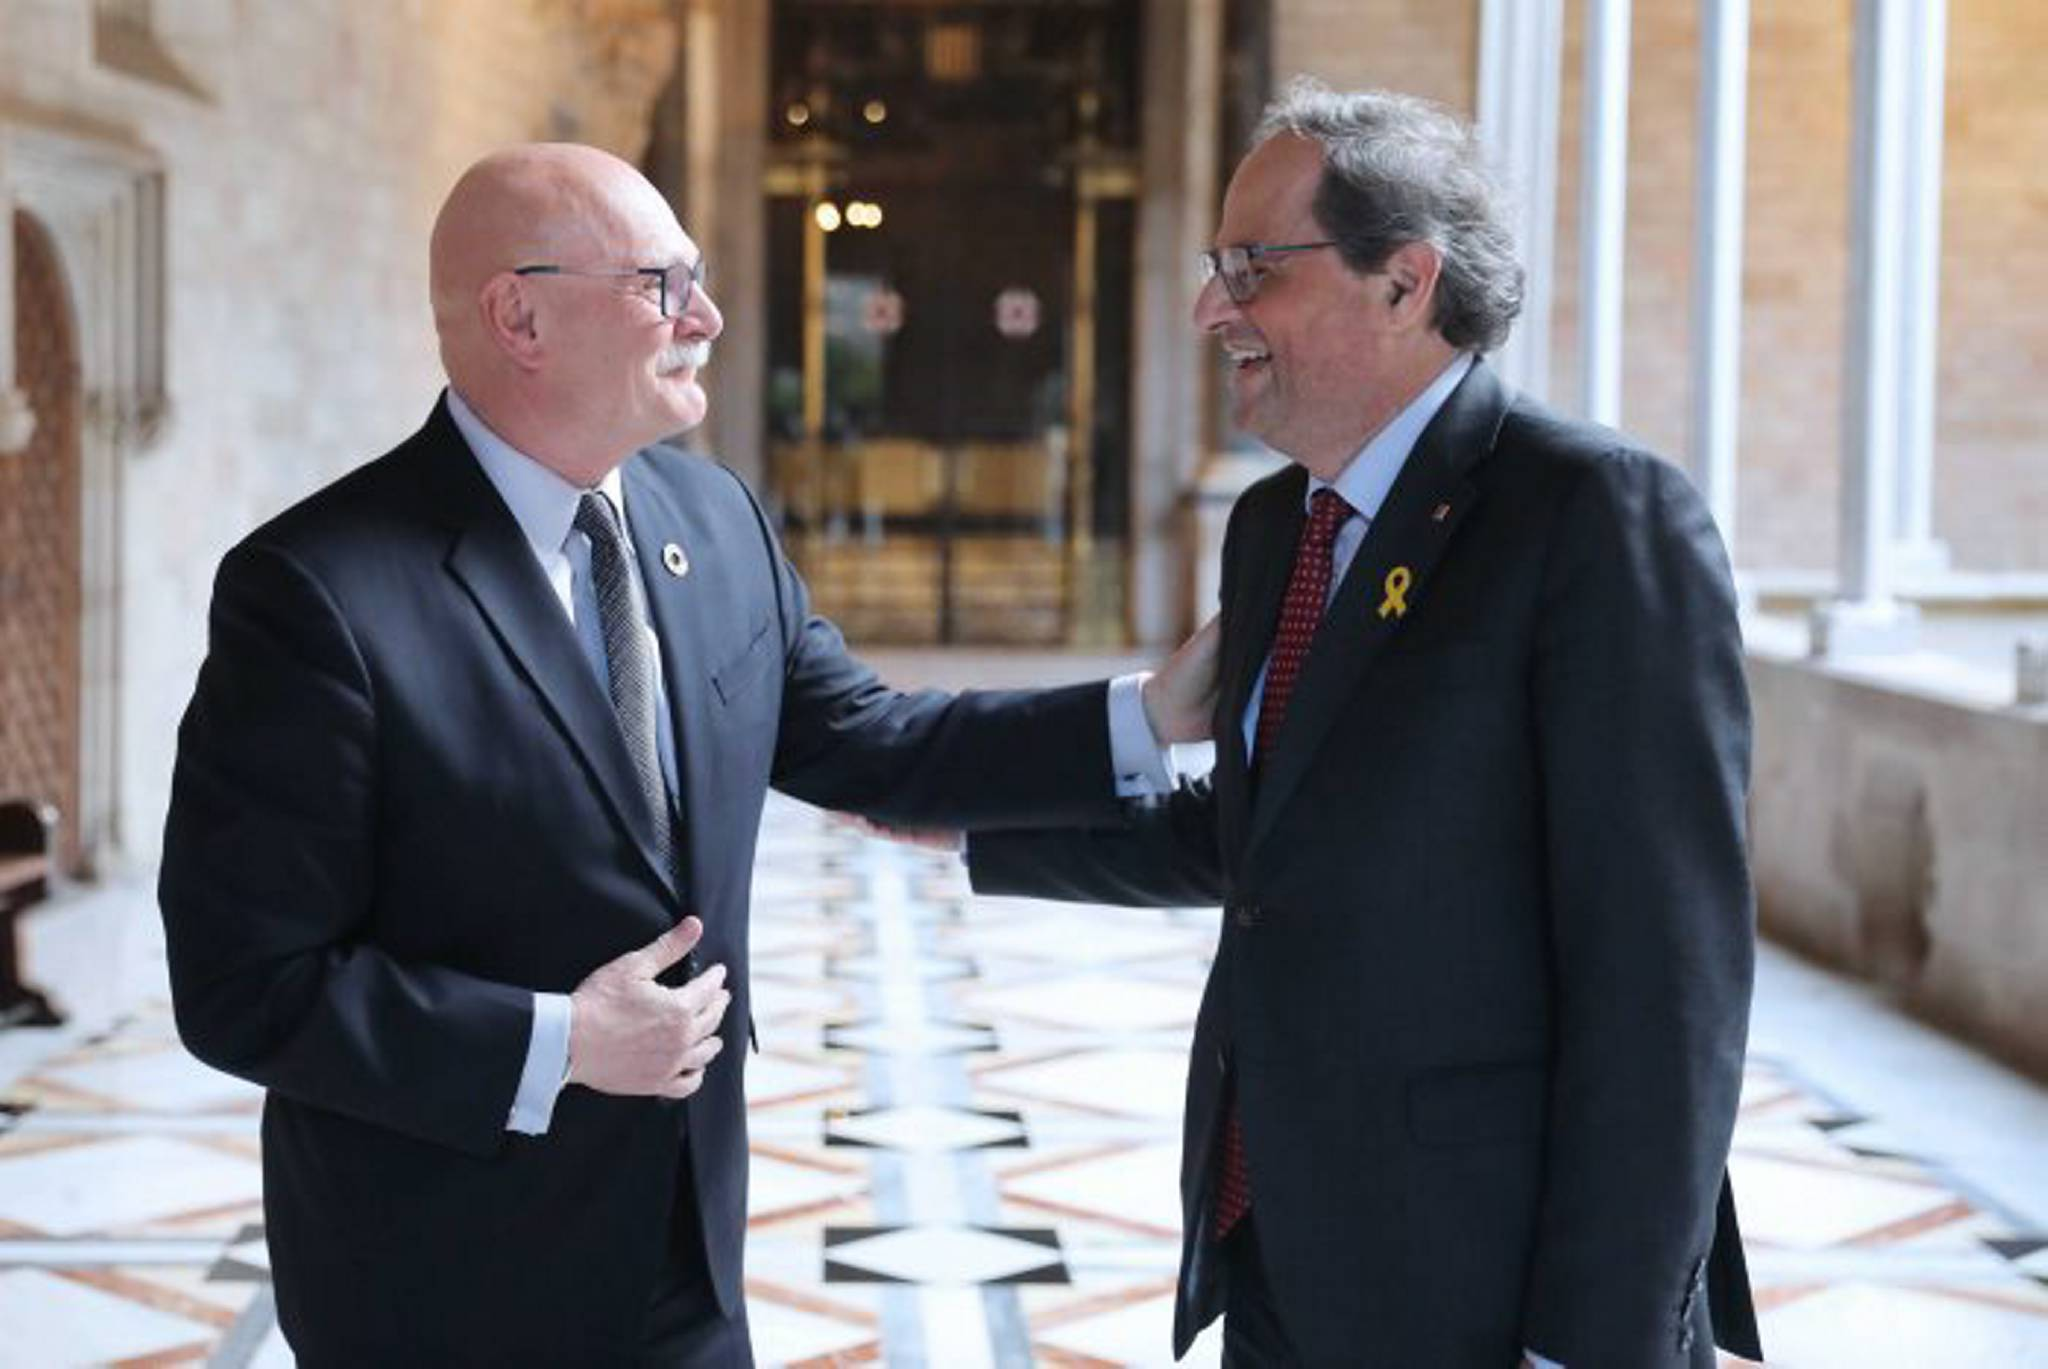 President Torra with GSMA chief executive John Hoffman at the Palau de la Generalitat